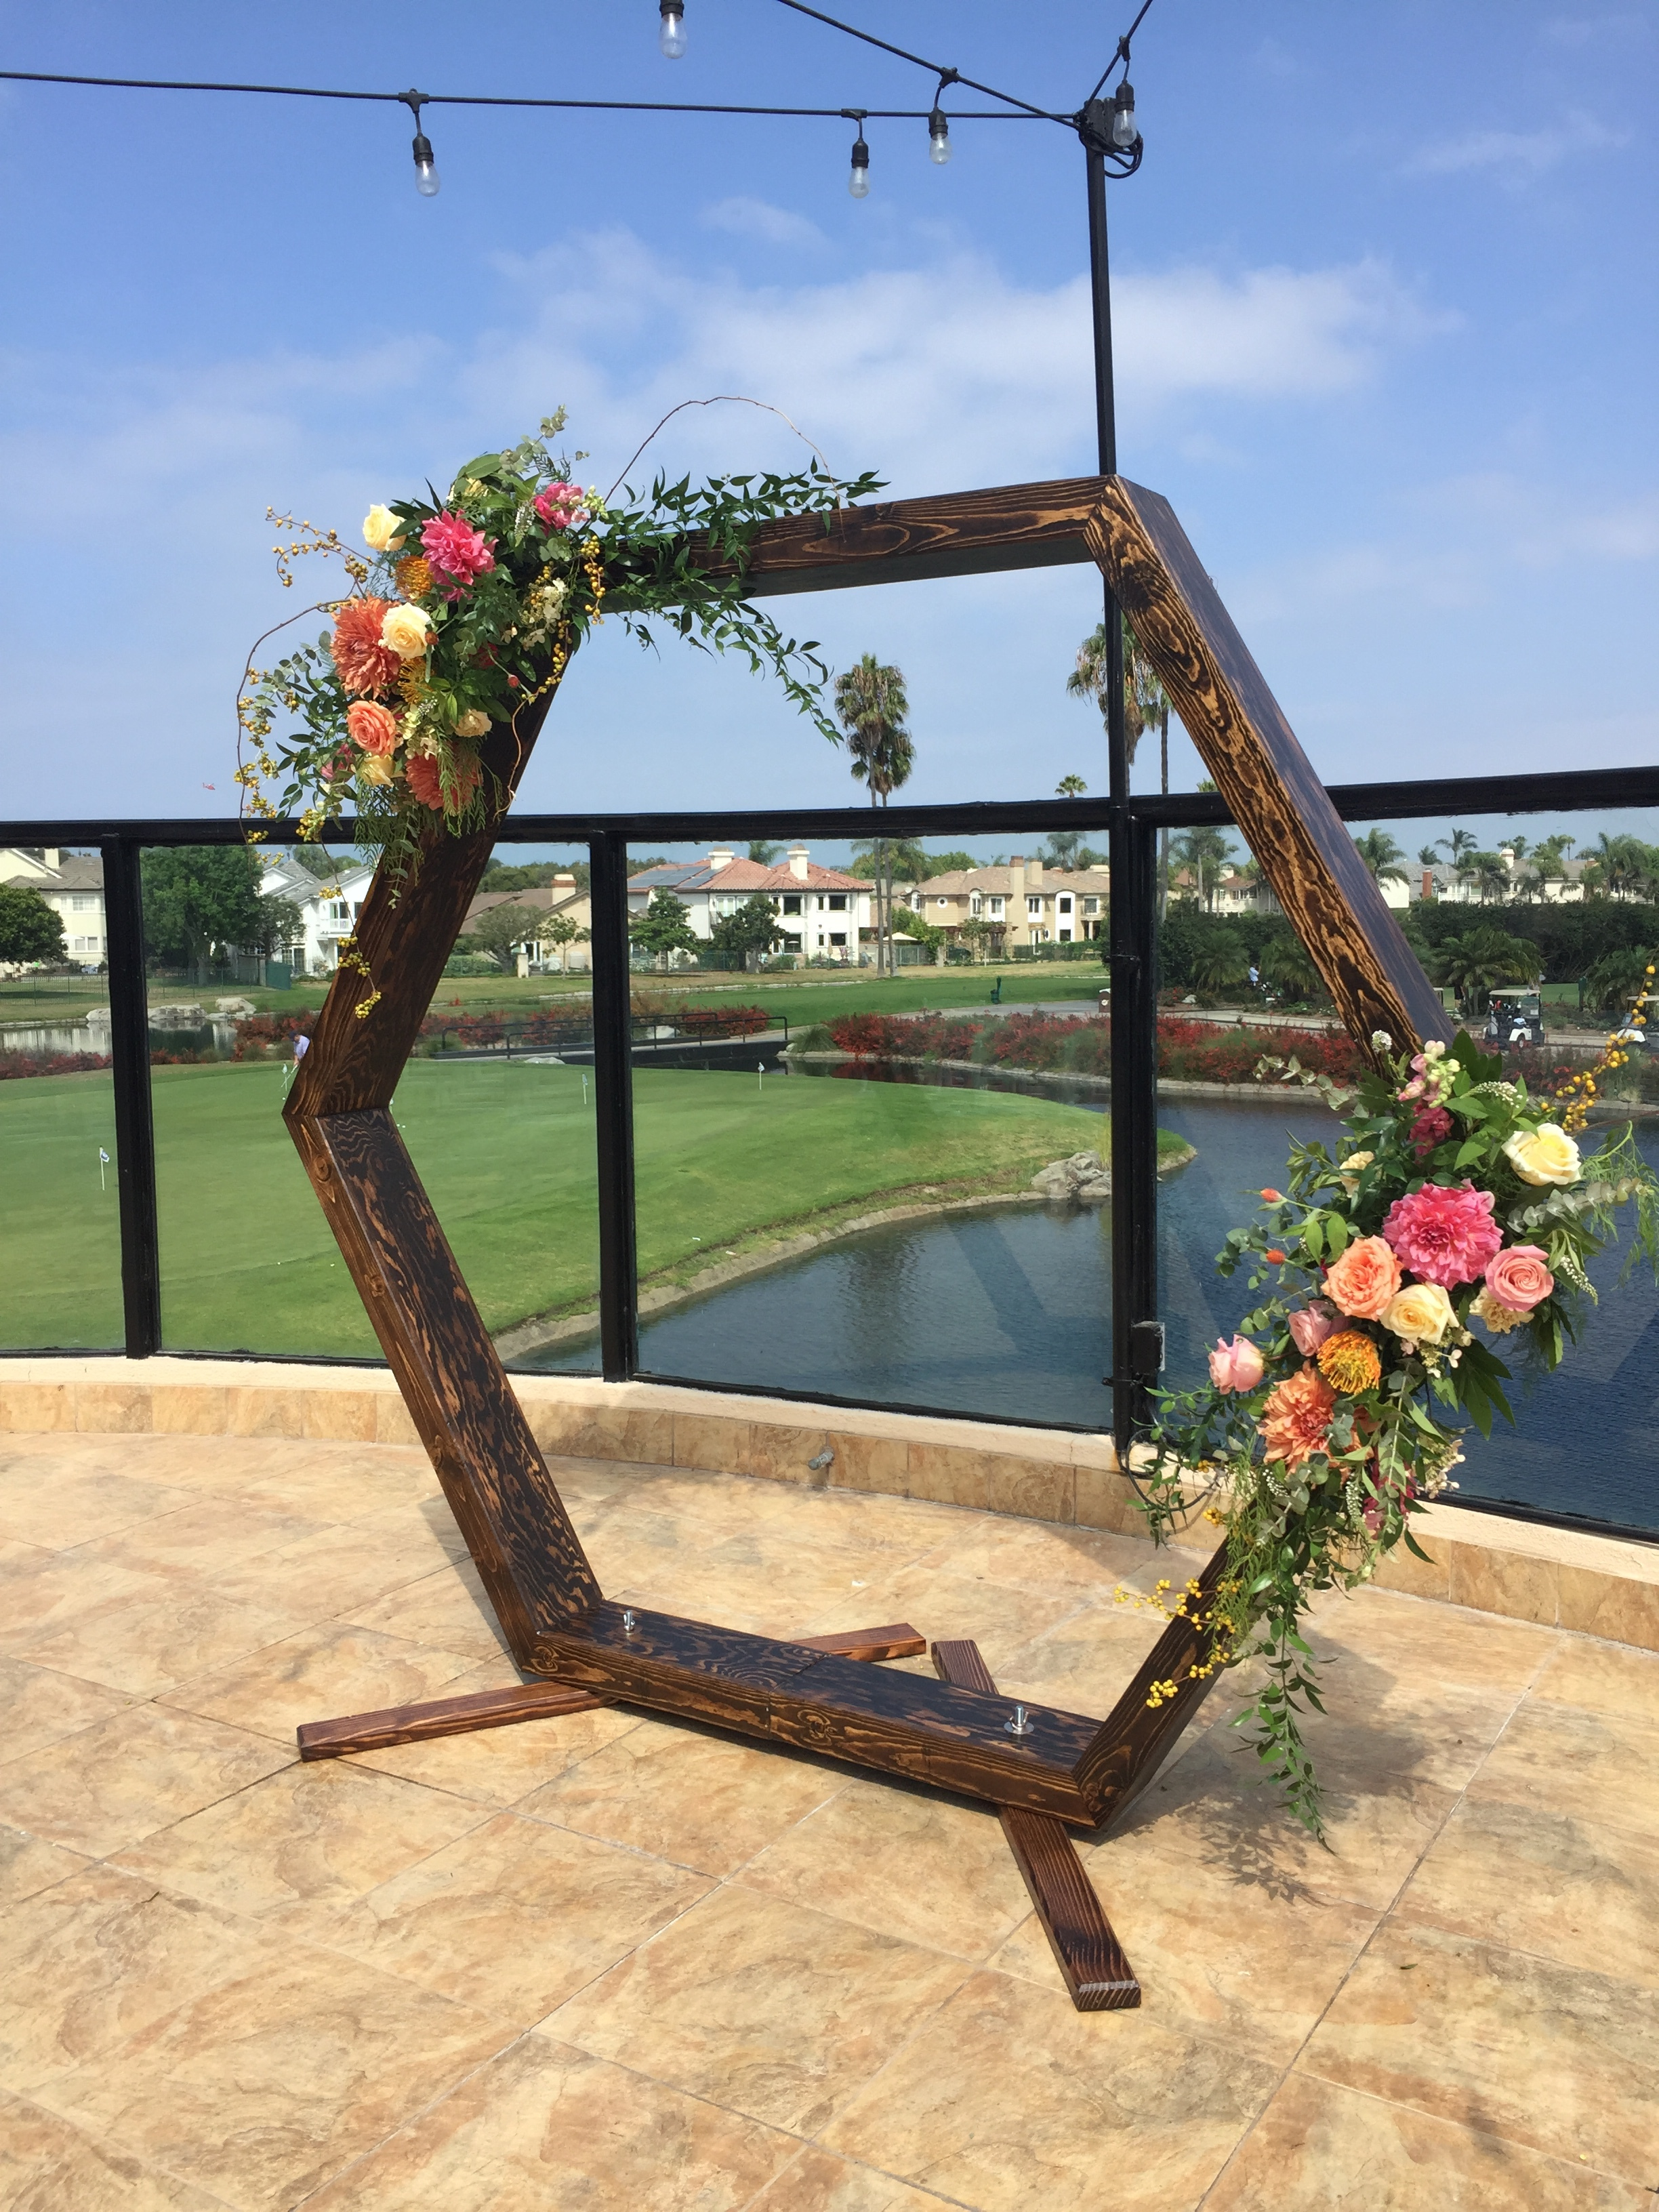 Hexagon arch  - Beautiful wooden arch for your wedding ceremony or sweetheart backdrop